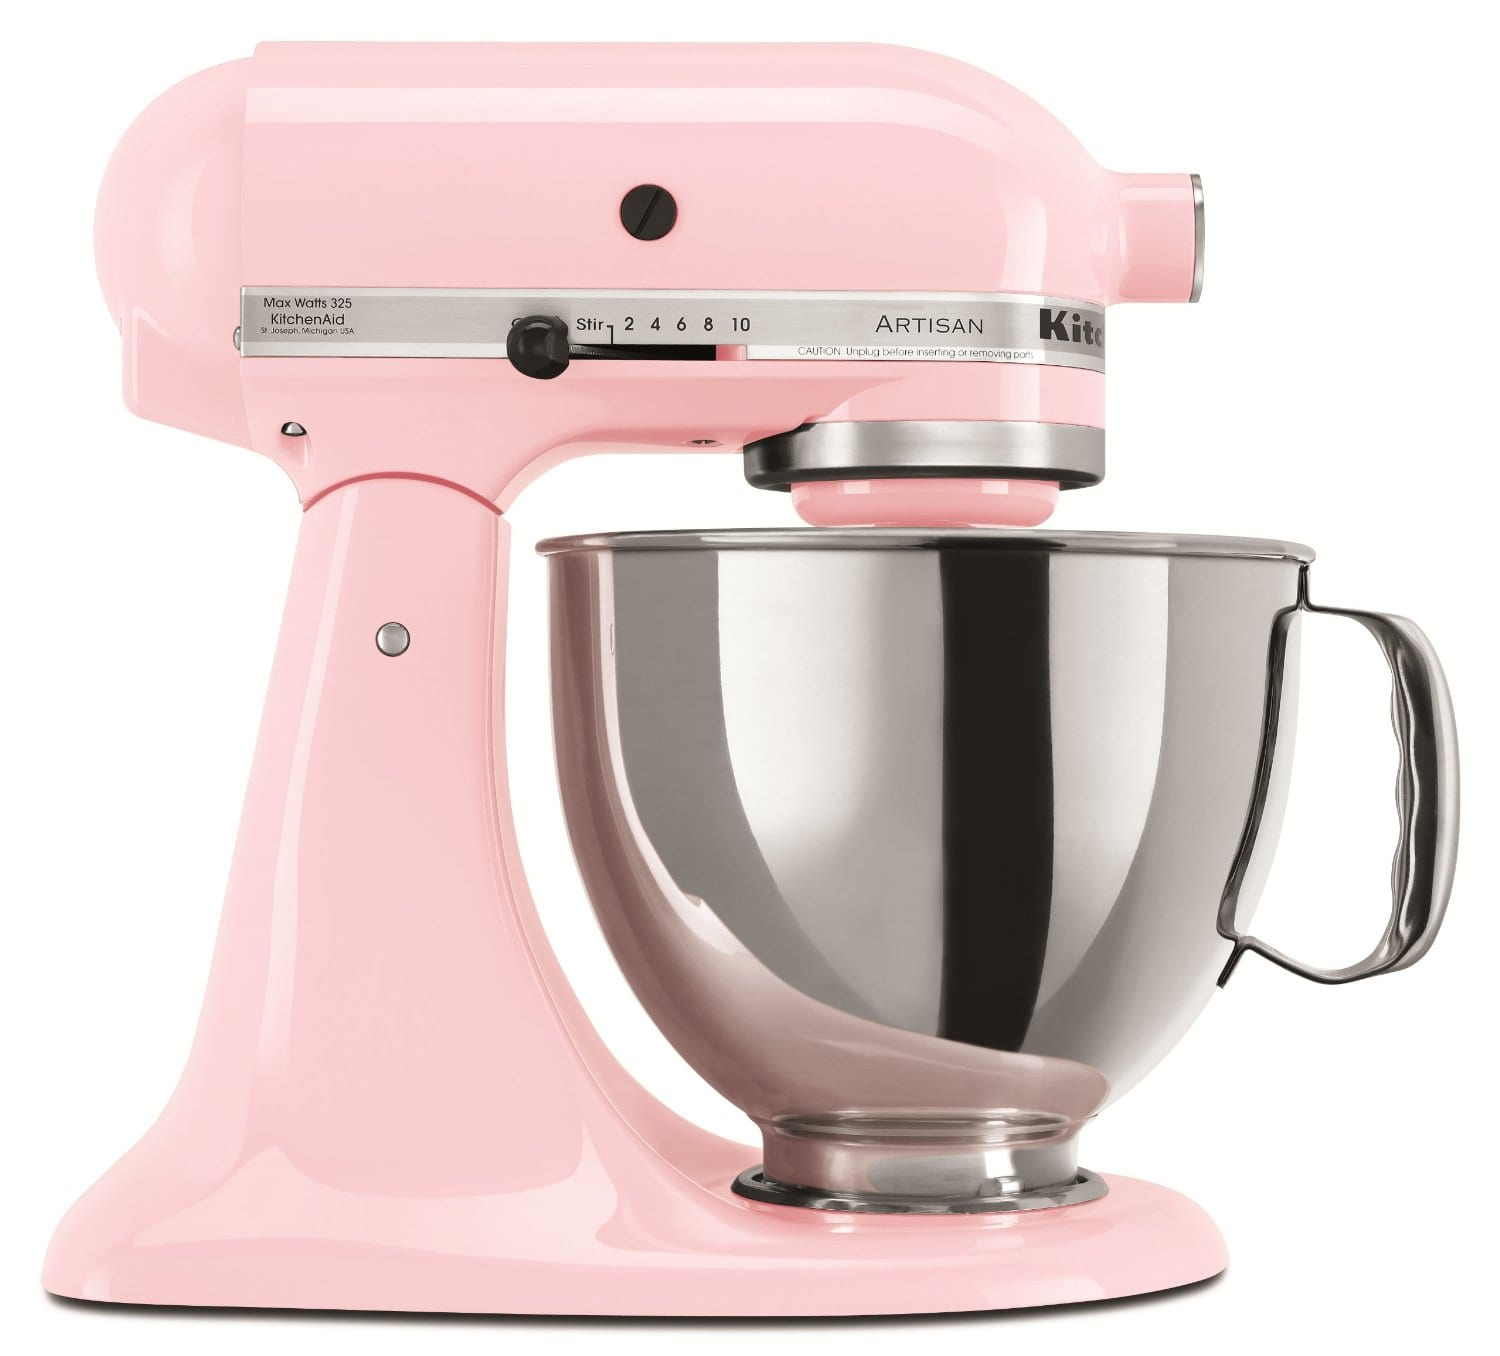 50 Gifts For Her 2020 Wife Approved Christmas Gift Ideas For All Women